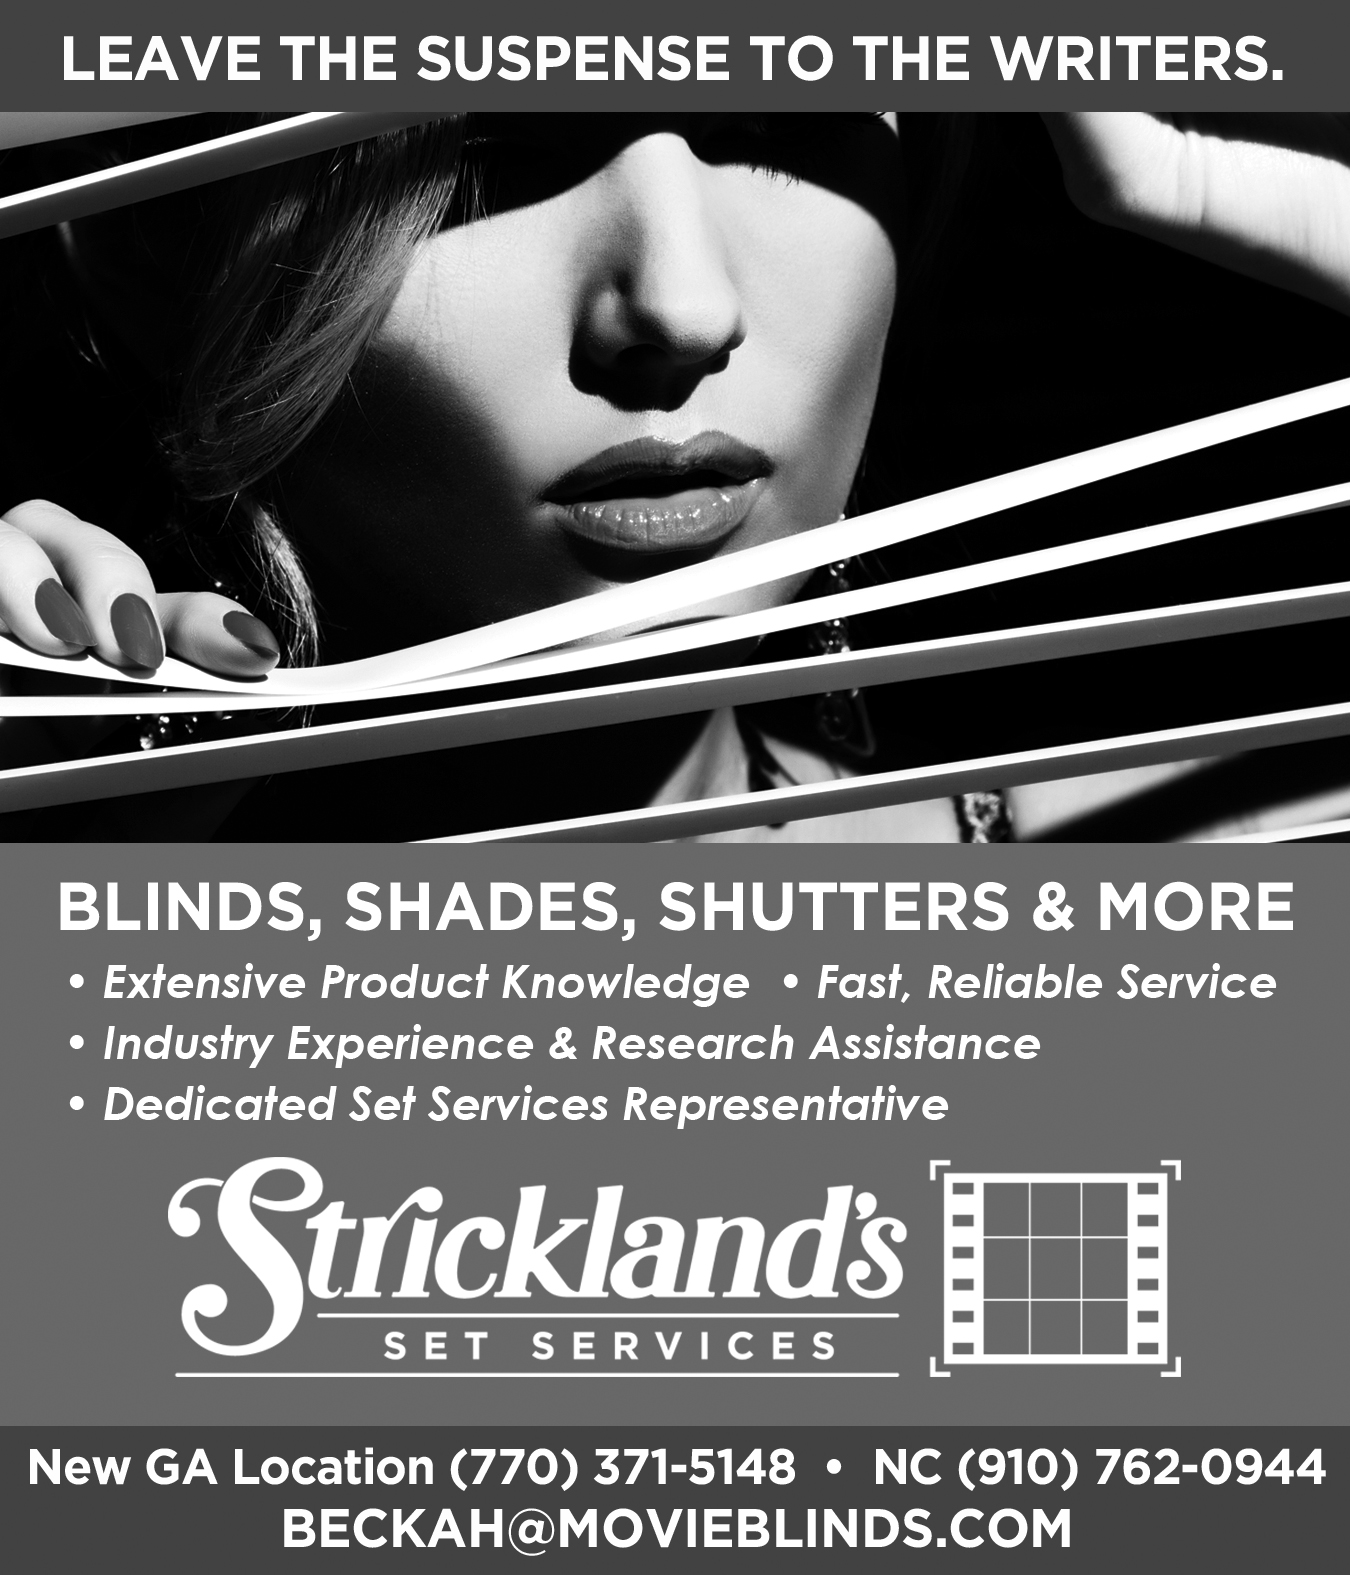 Get Paid $100 for Referrals to Strickland's Set Services.